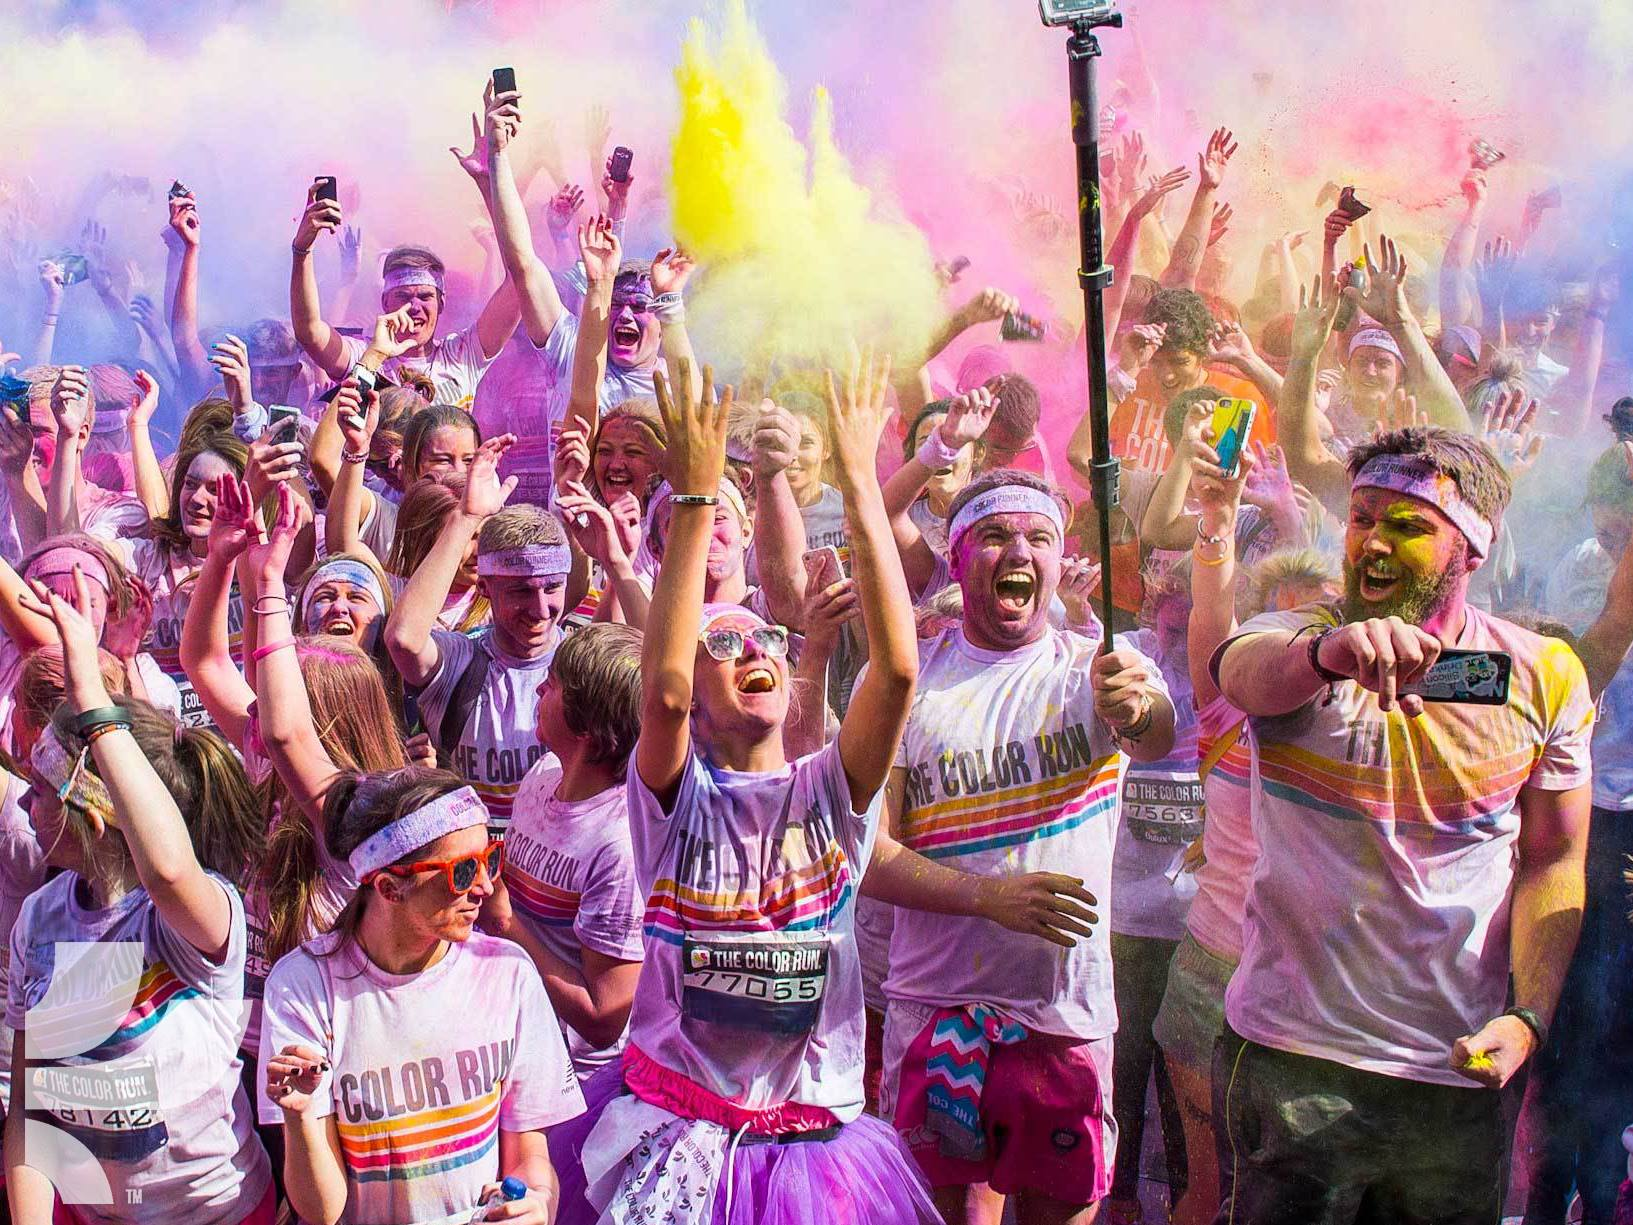 Wiko maineventpartner van The Colorrun!